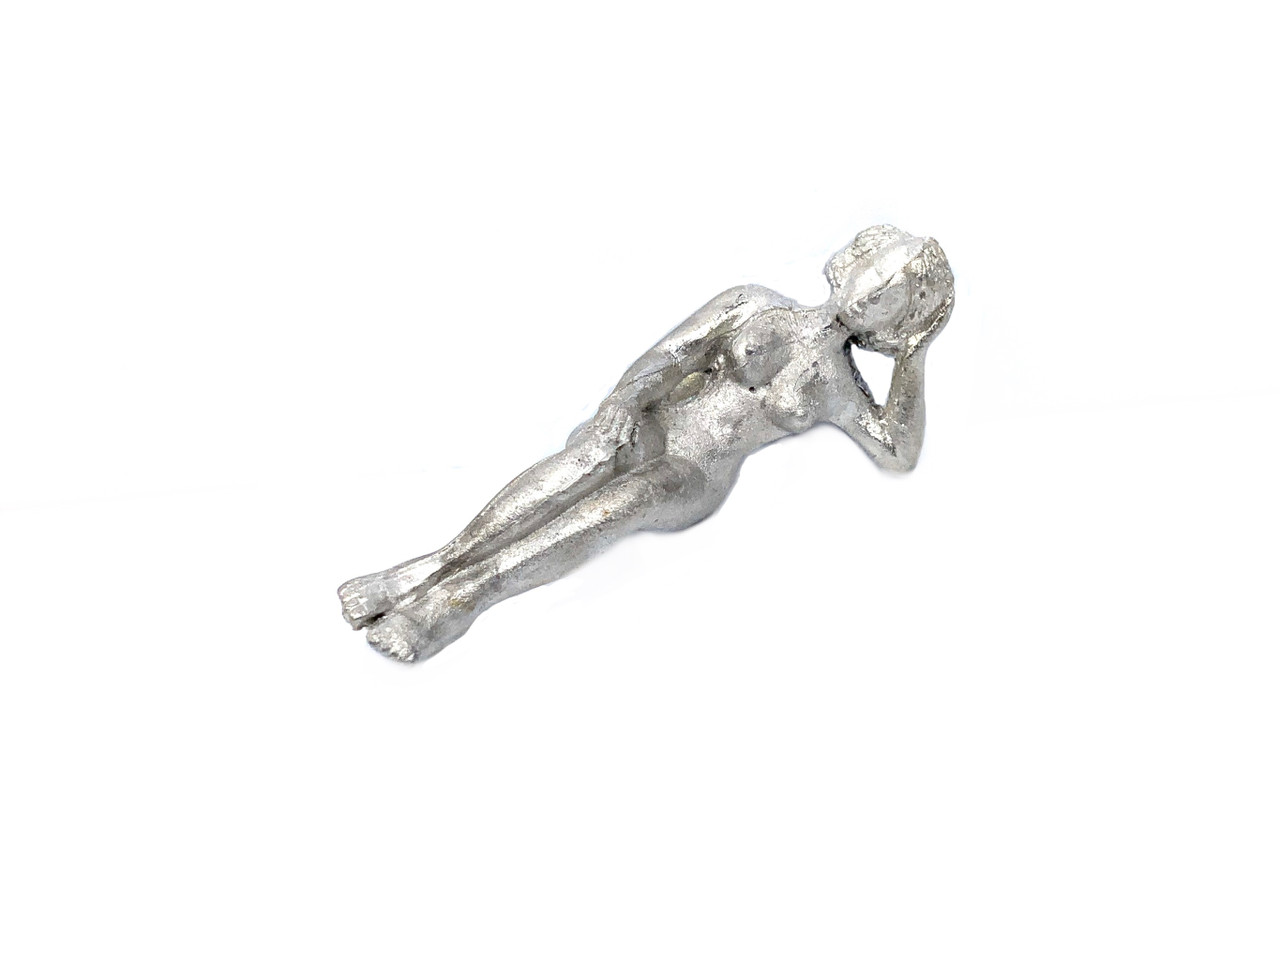 48-1277 Nude woman laying on arm brothel O Scale Figure FKA Keil Line unpainted